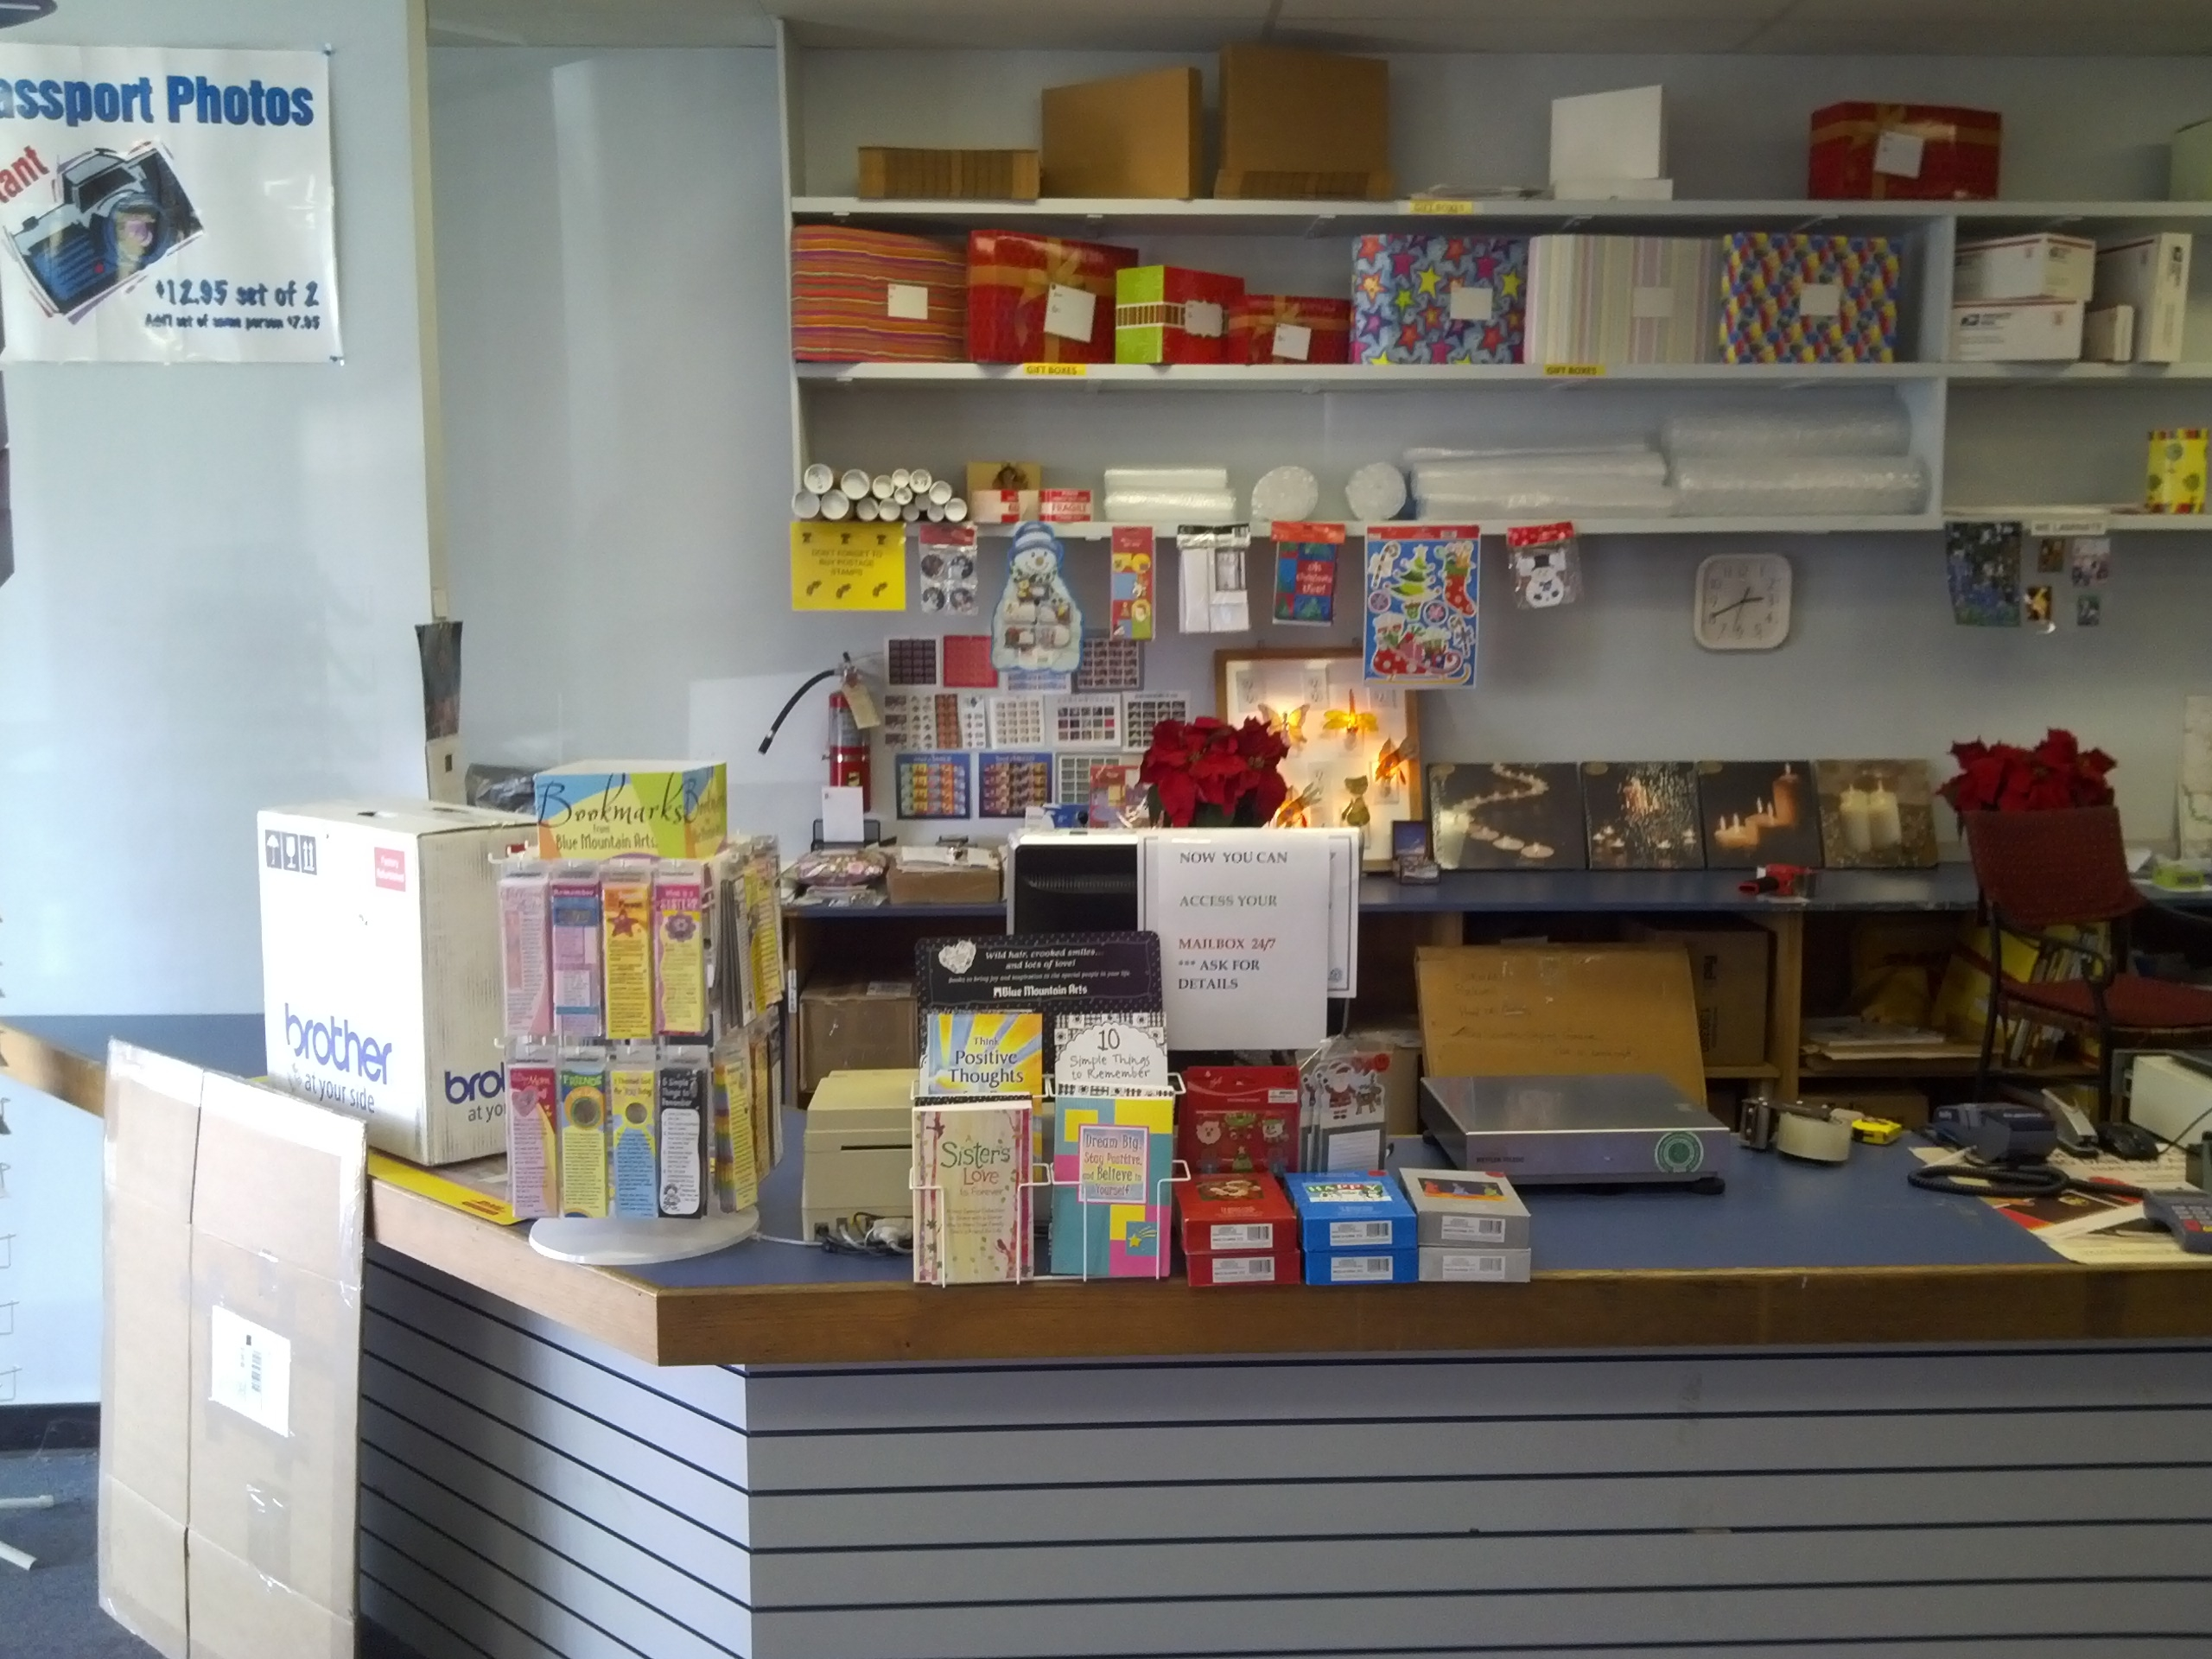 Postmart Mail & Copies image 8